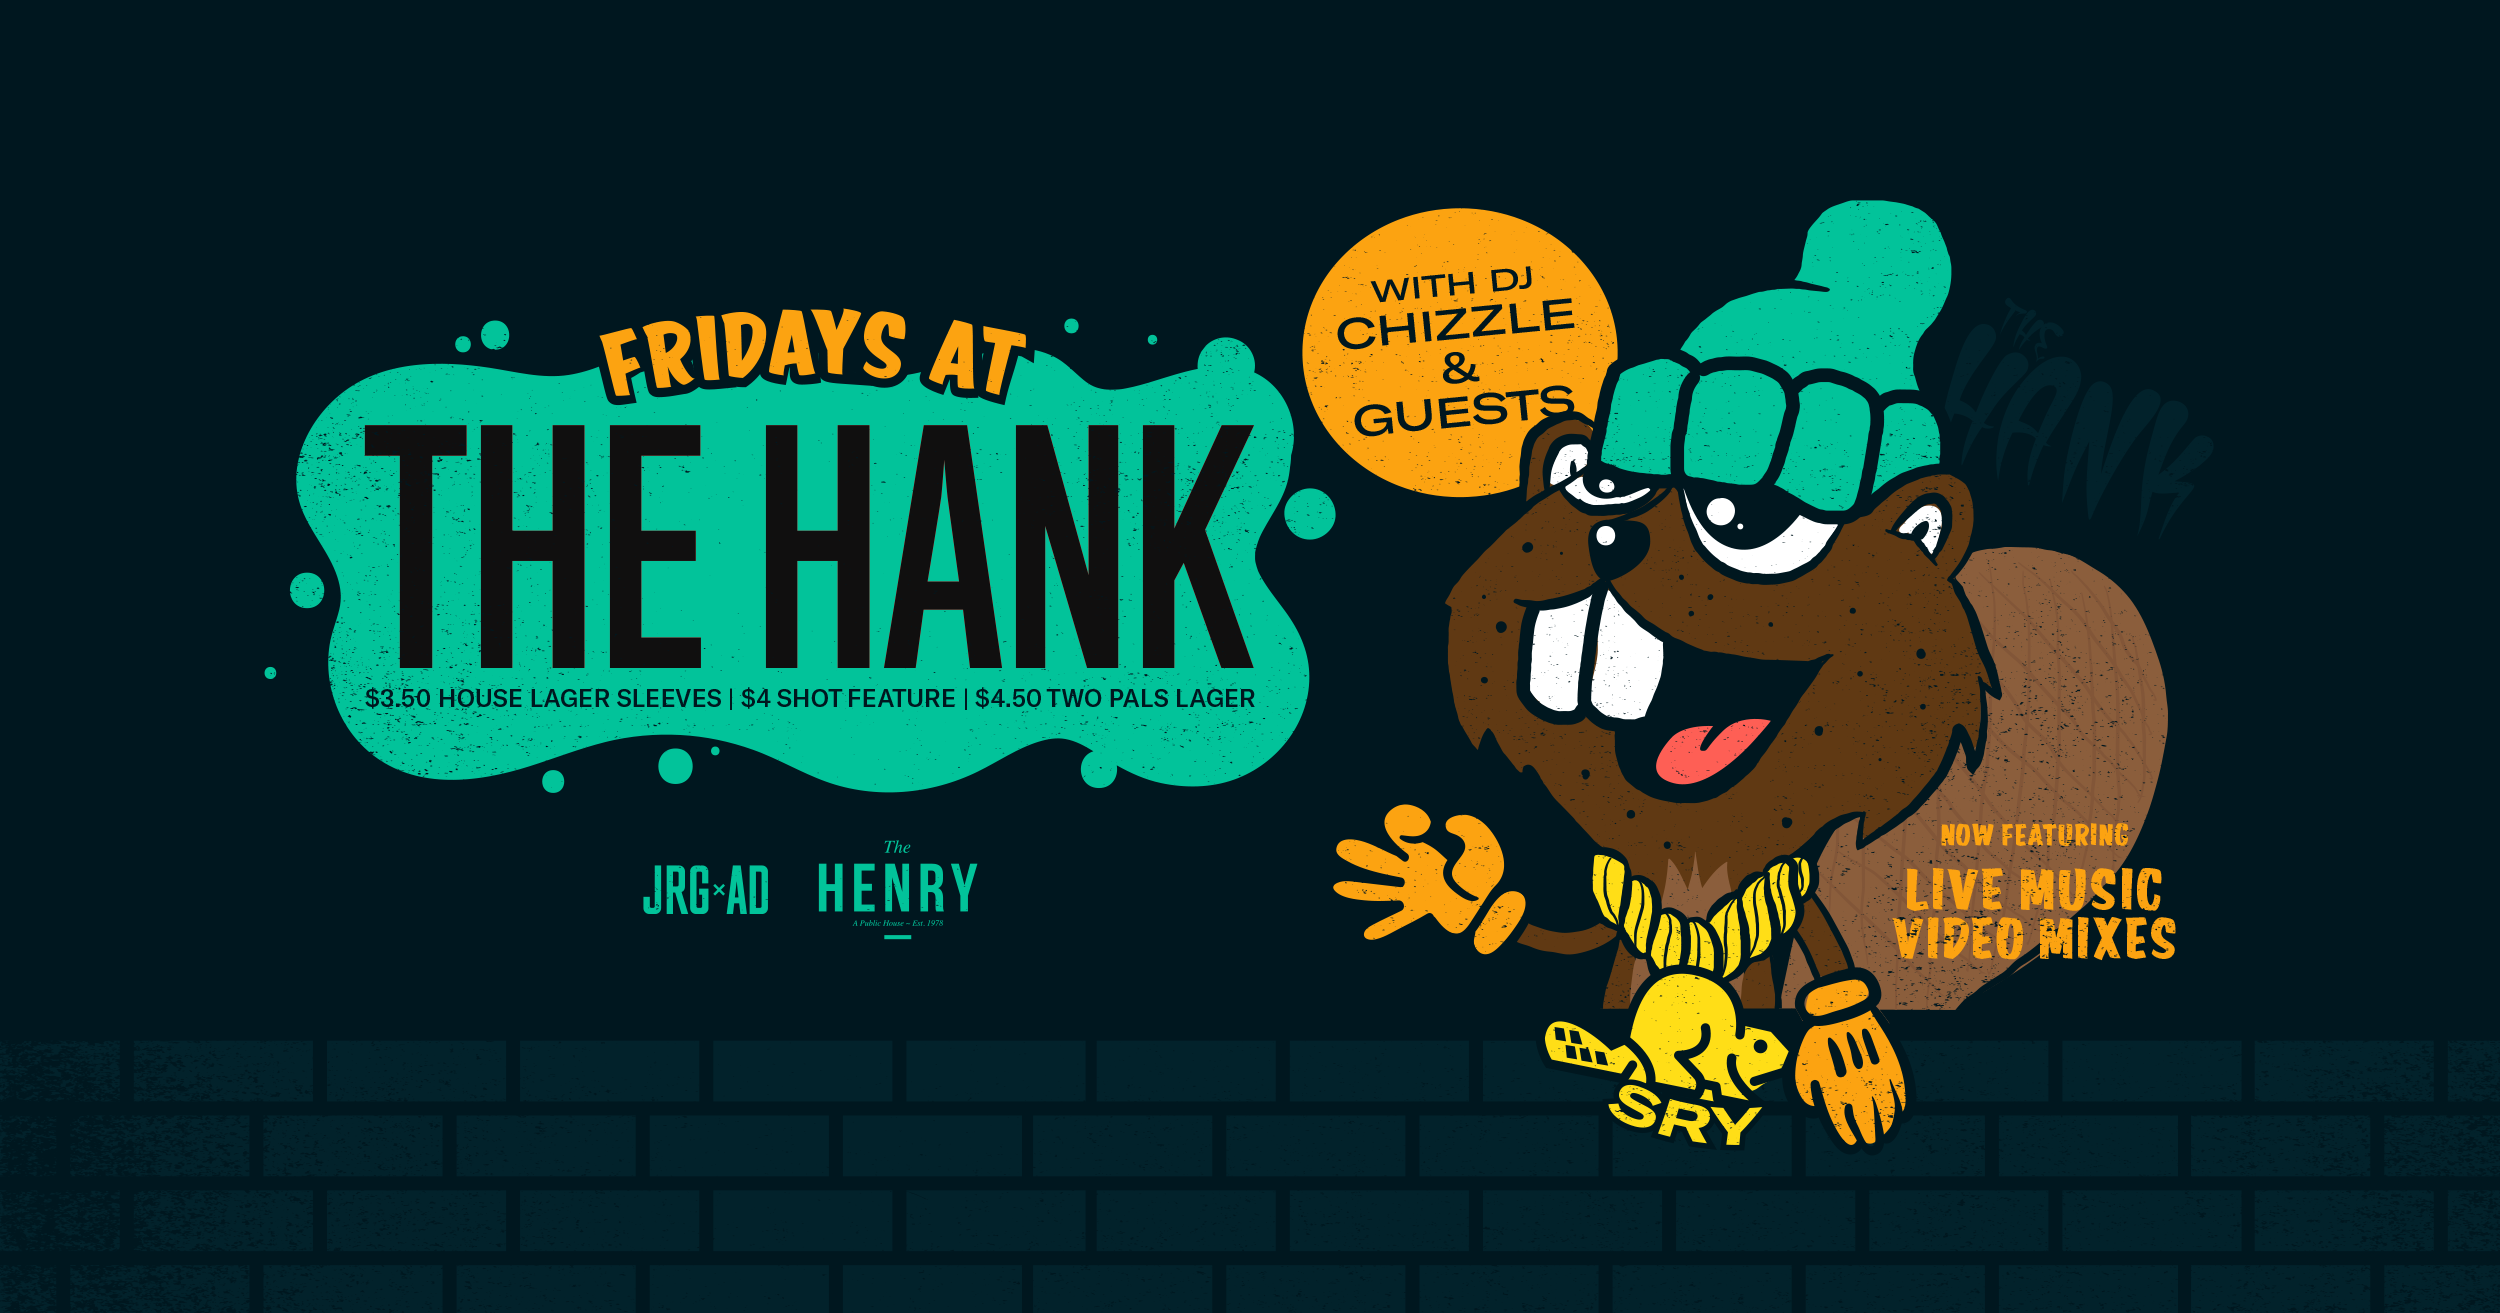 Friday at the Hank